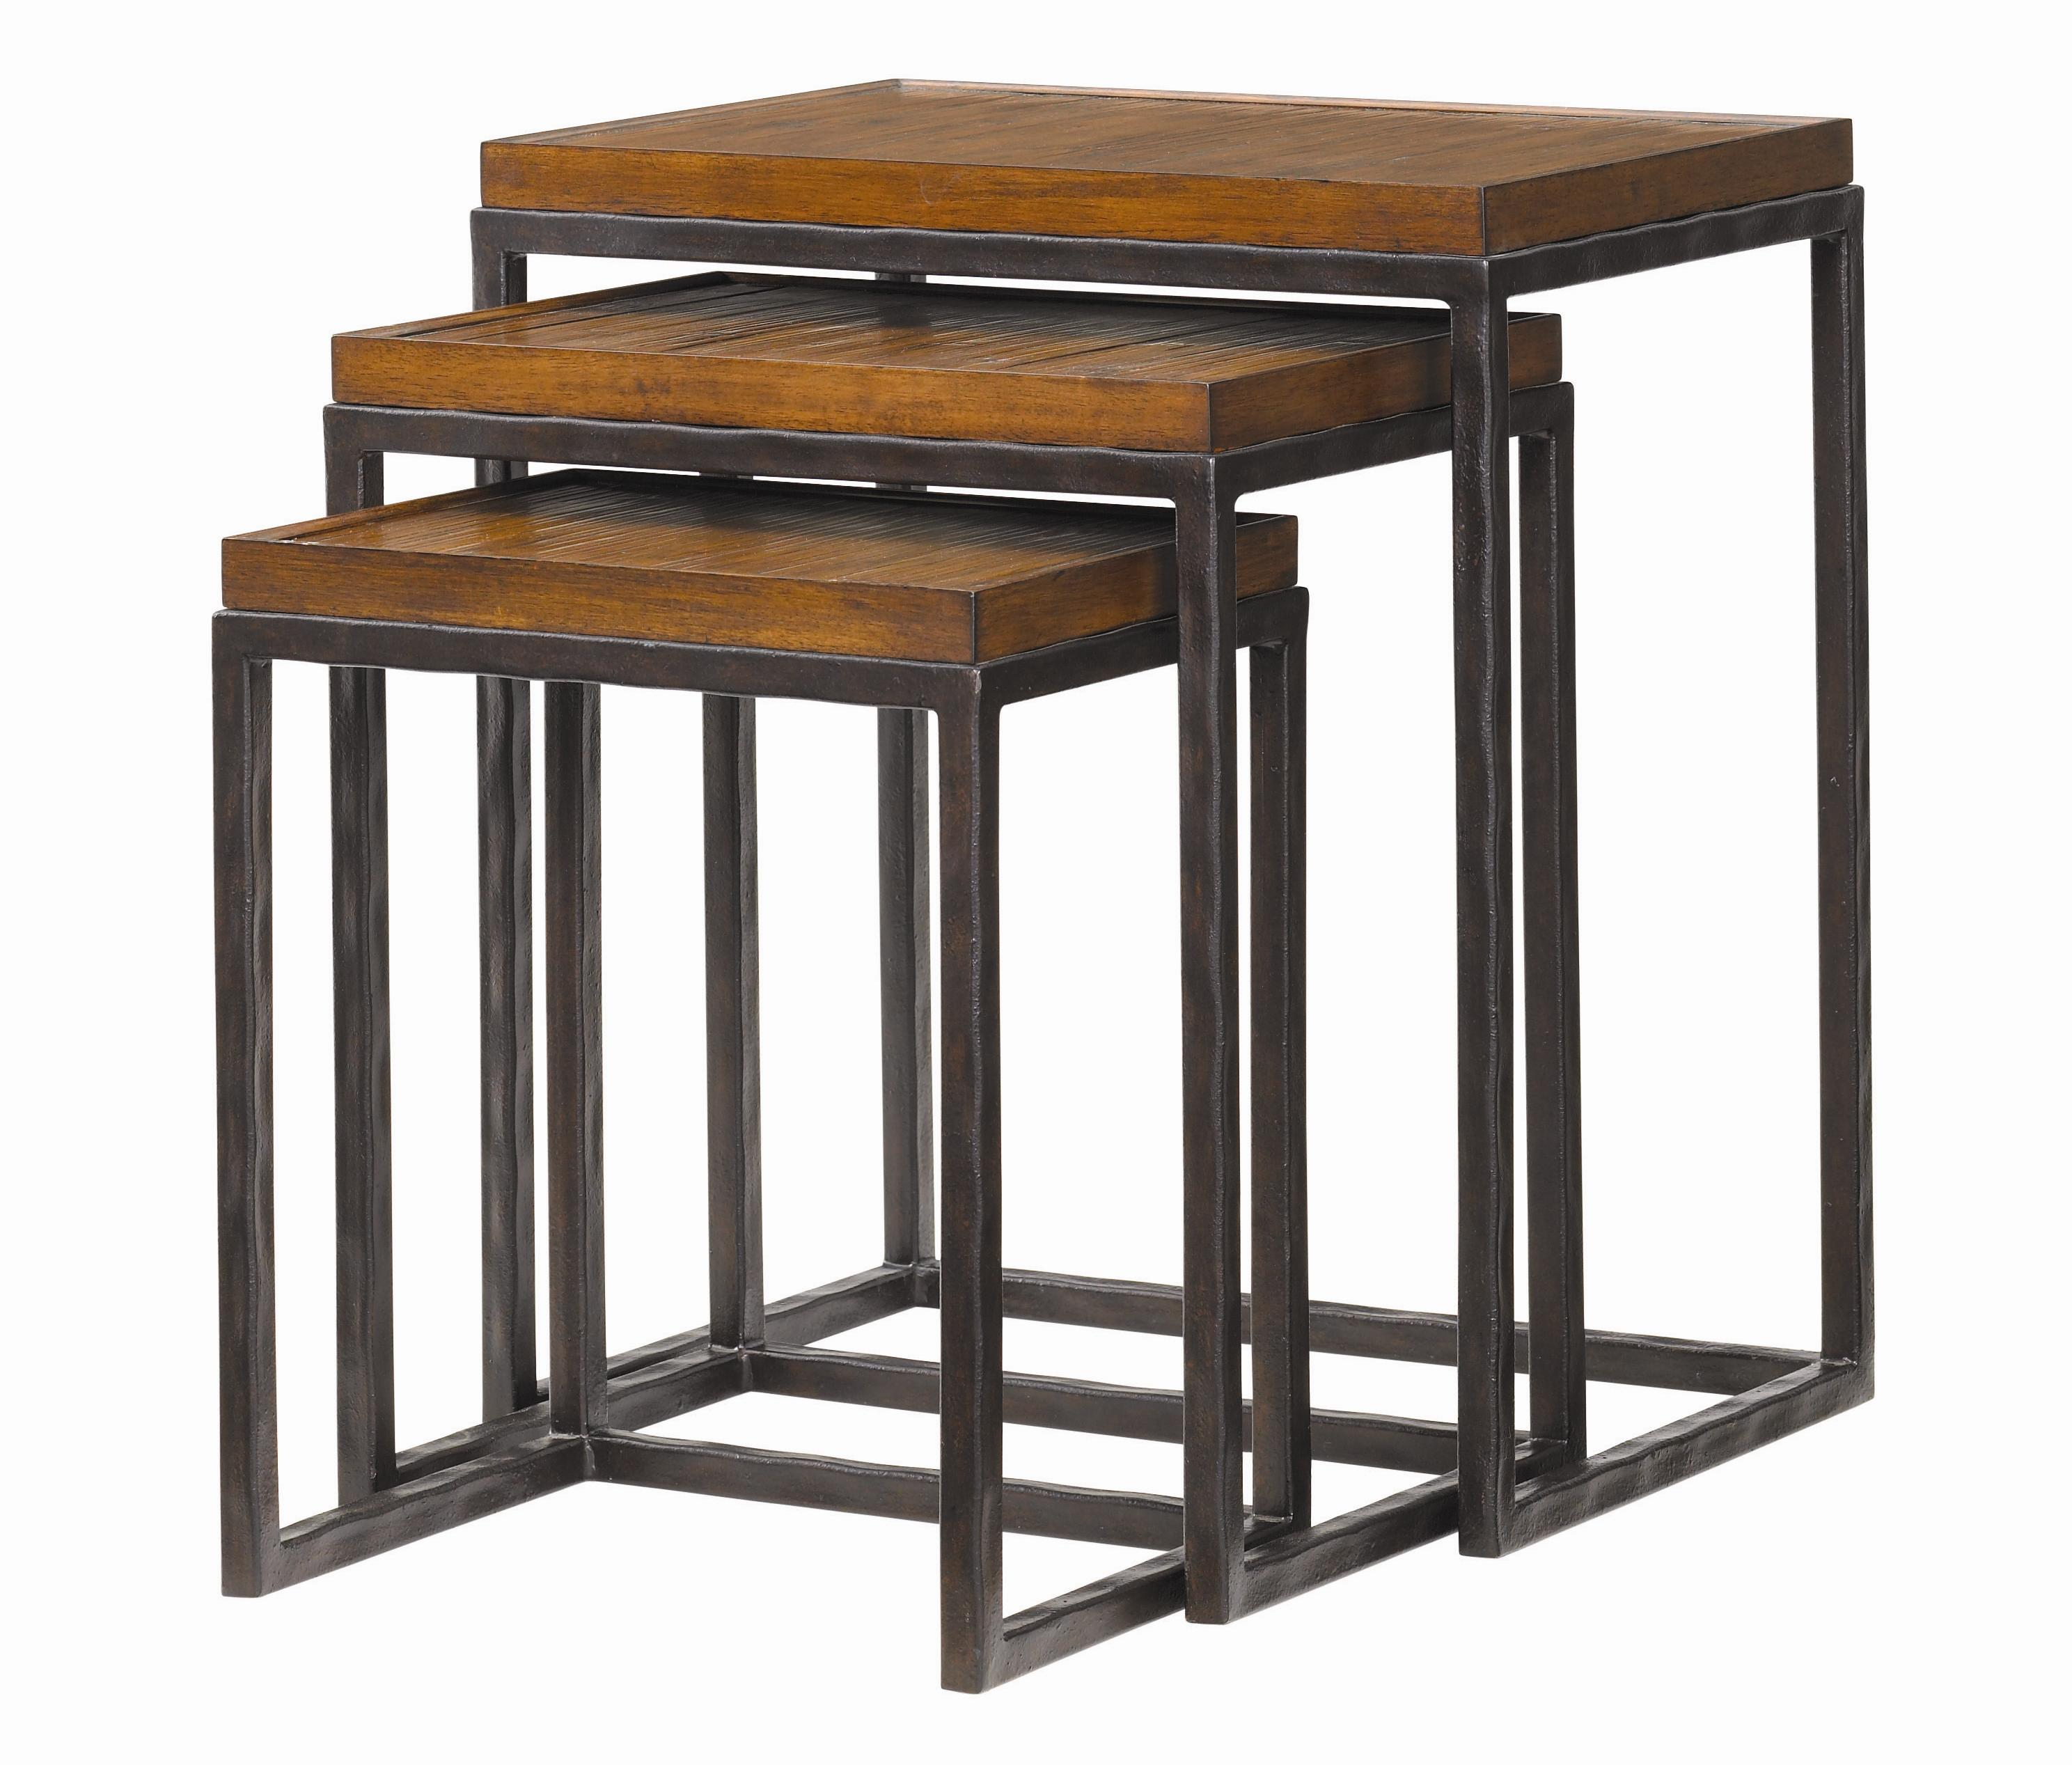 Ocean Club Ocean Reef Nesting Tables by Tommy Bahama Home at Baer's Furniture